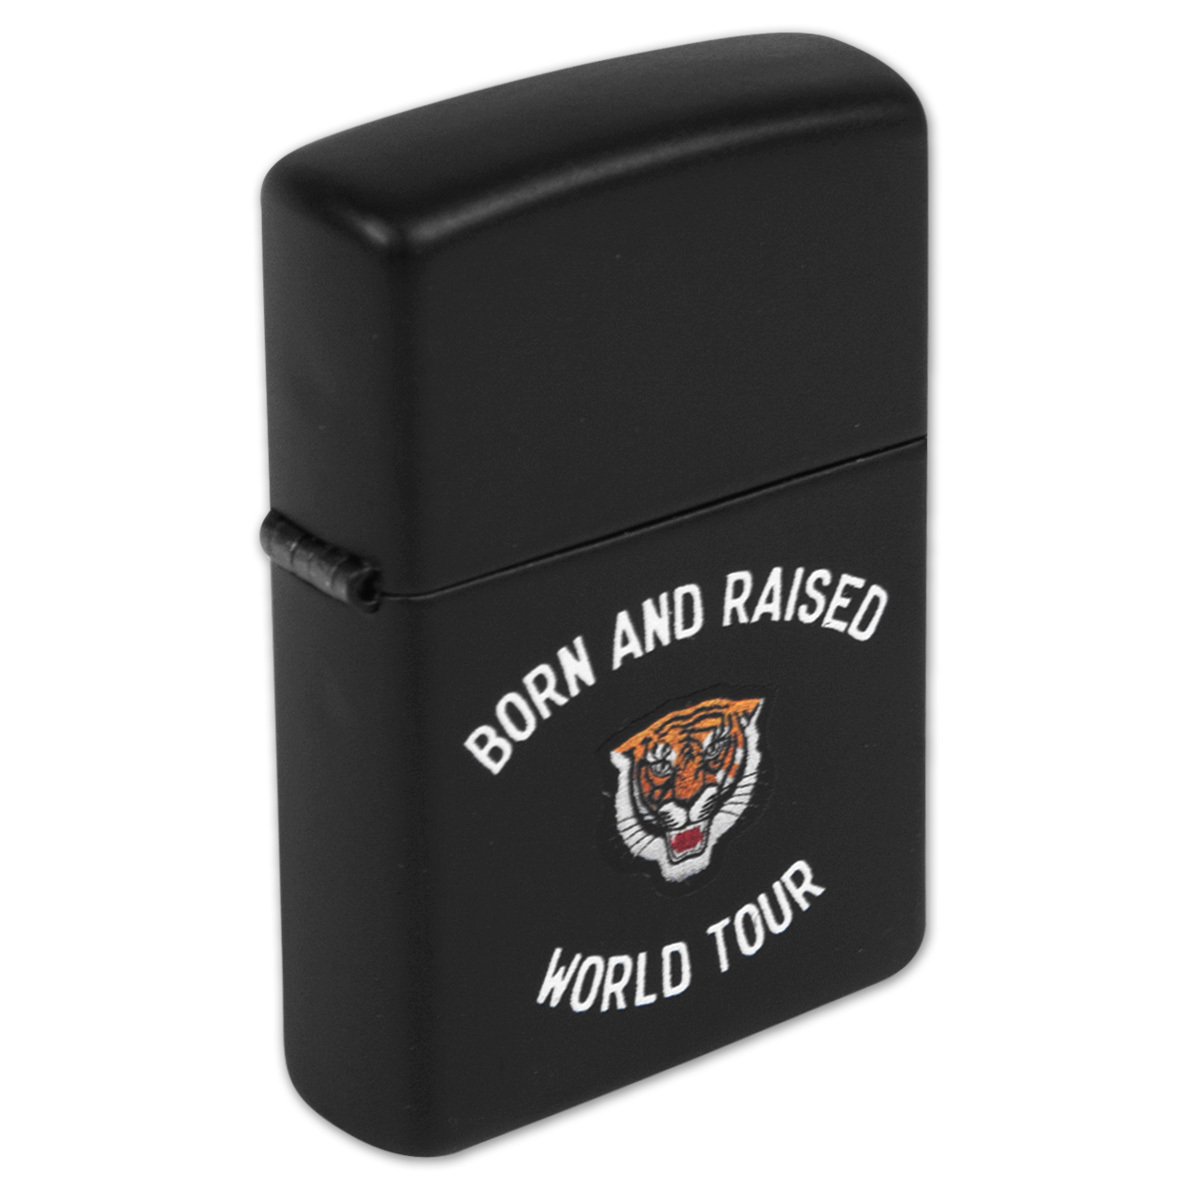 Born and Raised World Tour Zippo